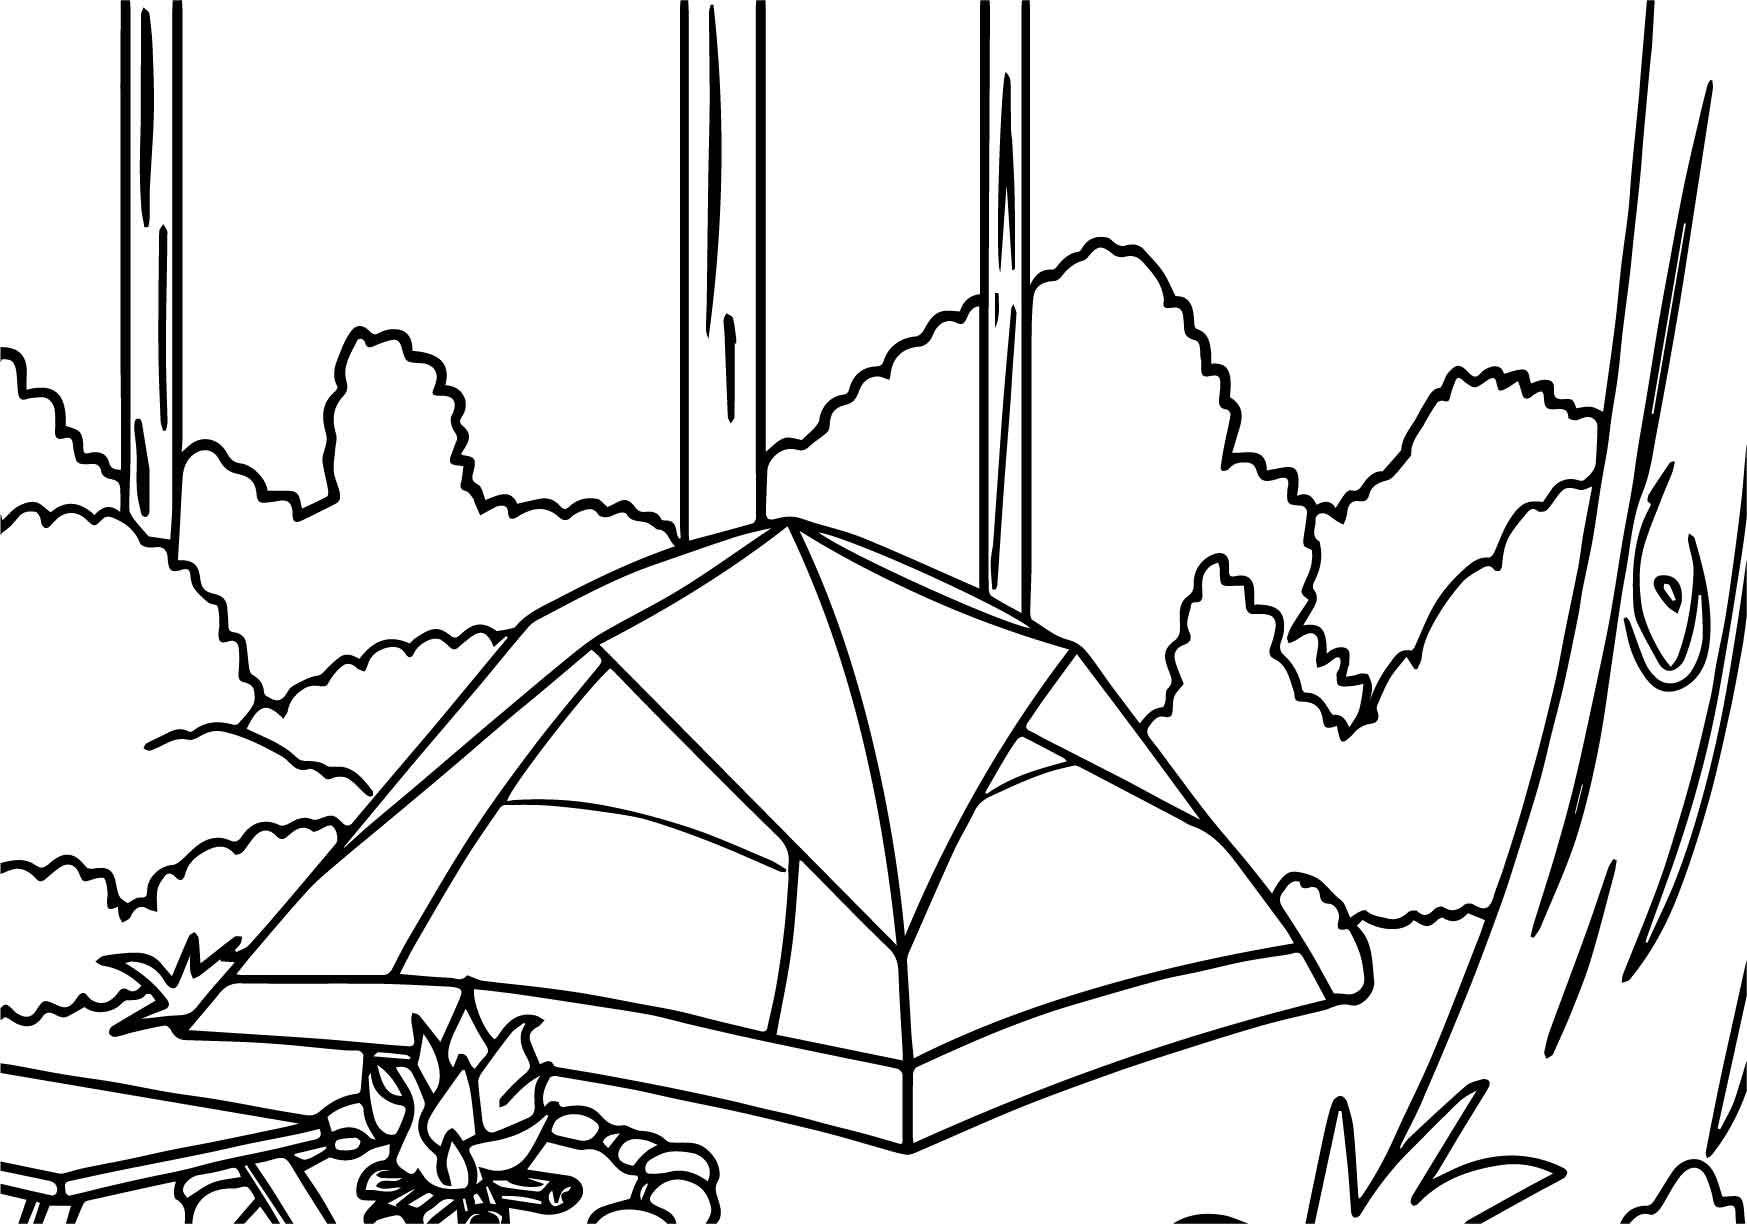 Camping Tent In Forest Coloring Page